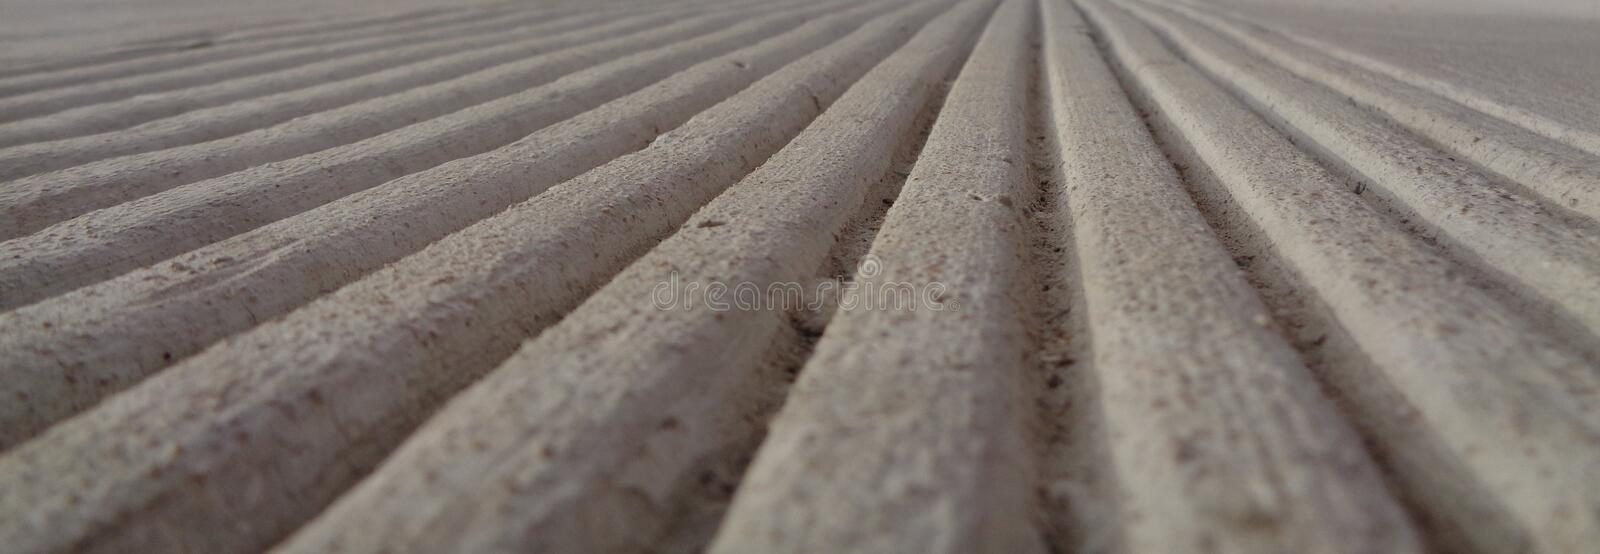 Parallel Lines in Concrete Toward a Horizon stock photography